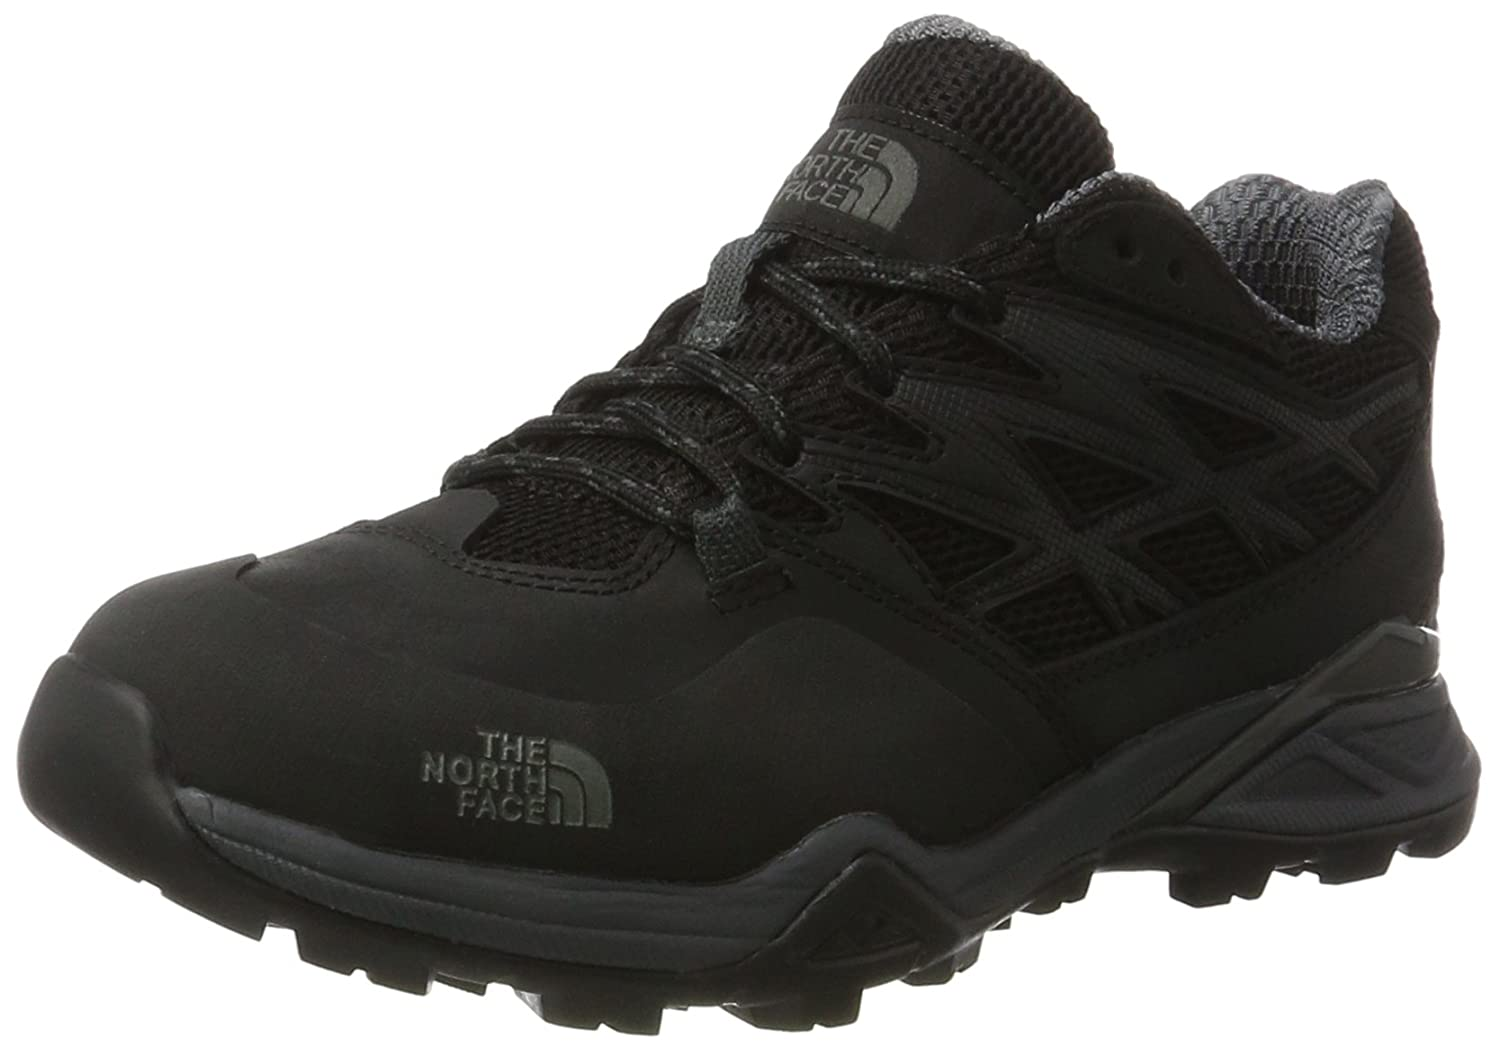 THE NORTH FACE Damen Hedgehog Hike Gore-tex Trekking-& Wanderhalbschuhe, Dark Gull grau Melon rot, 37 EU